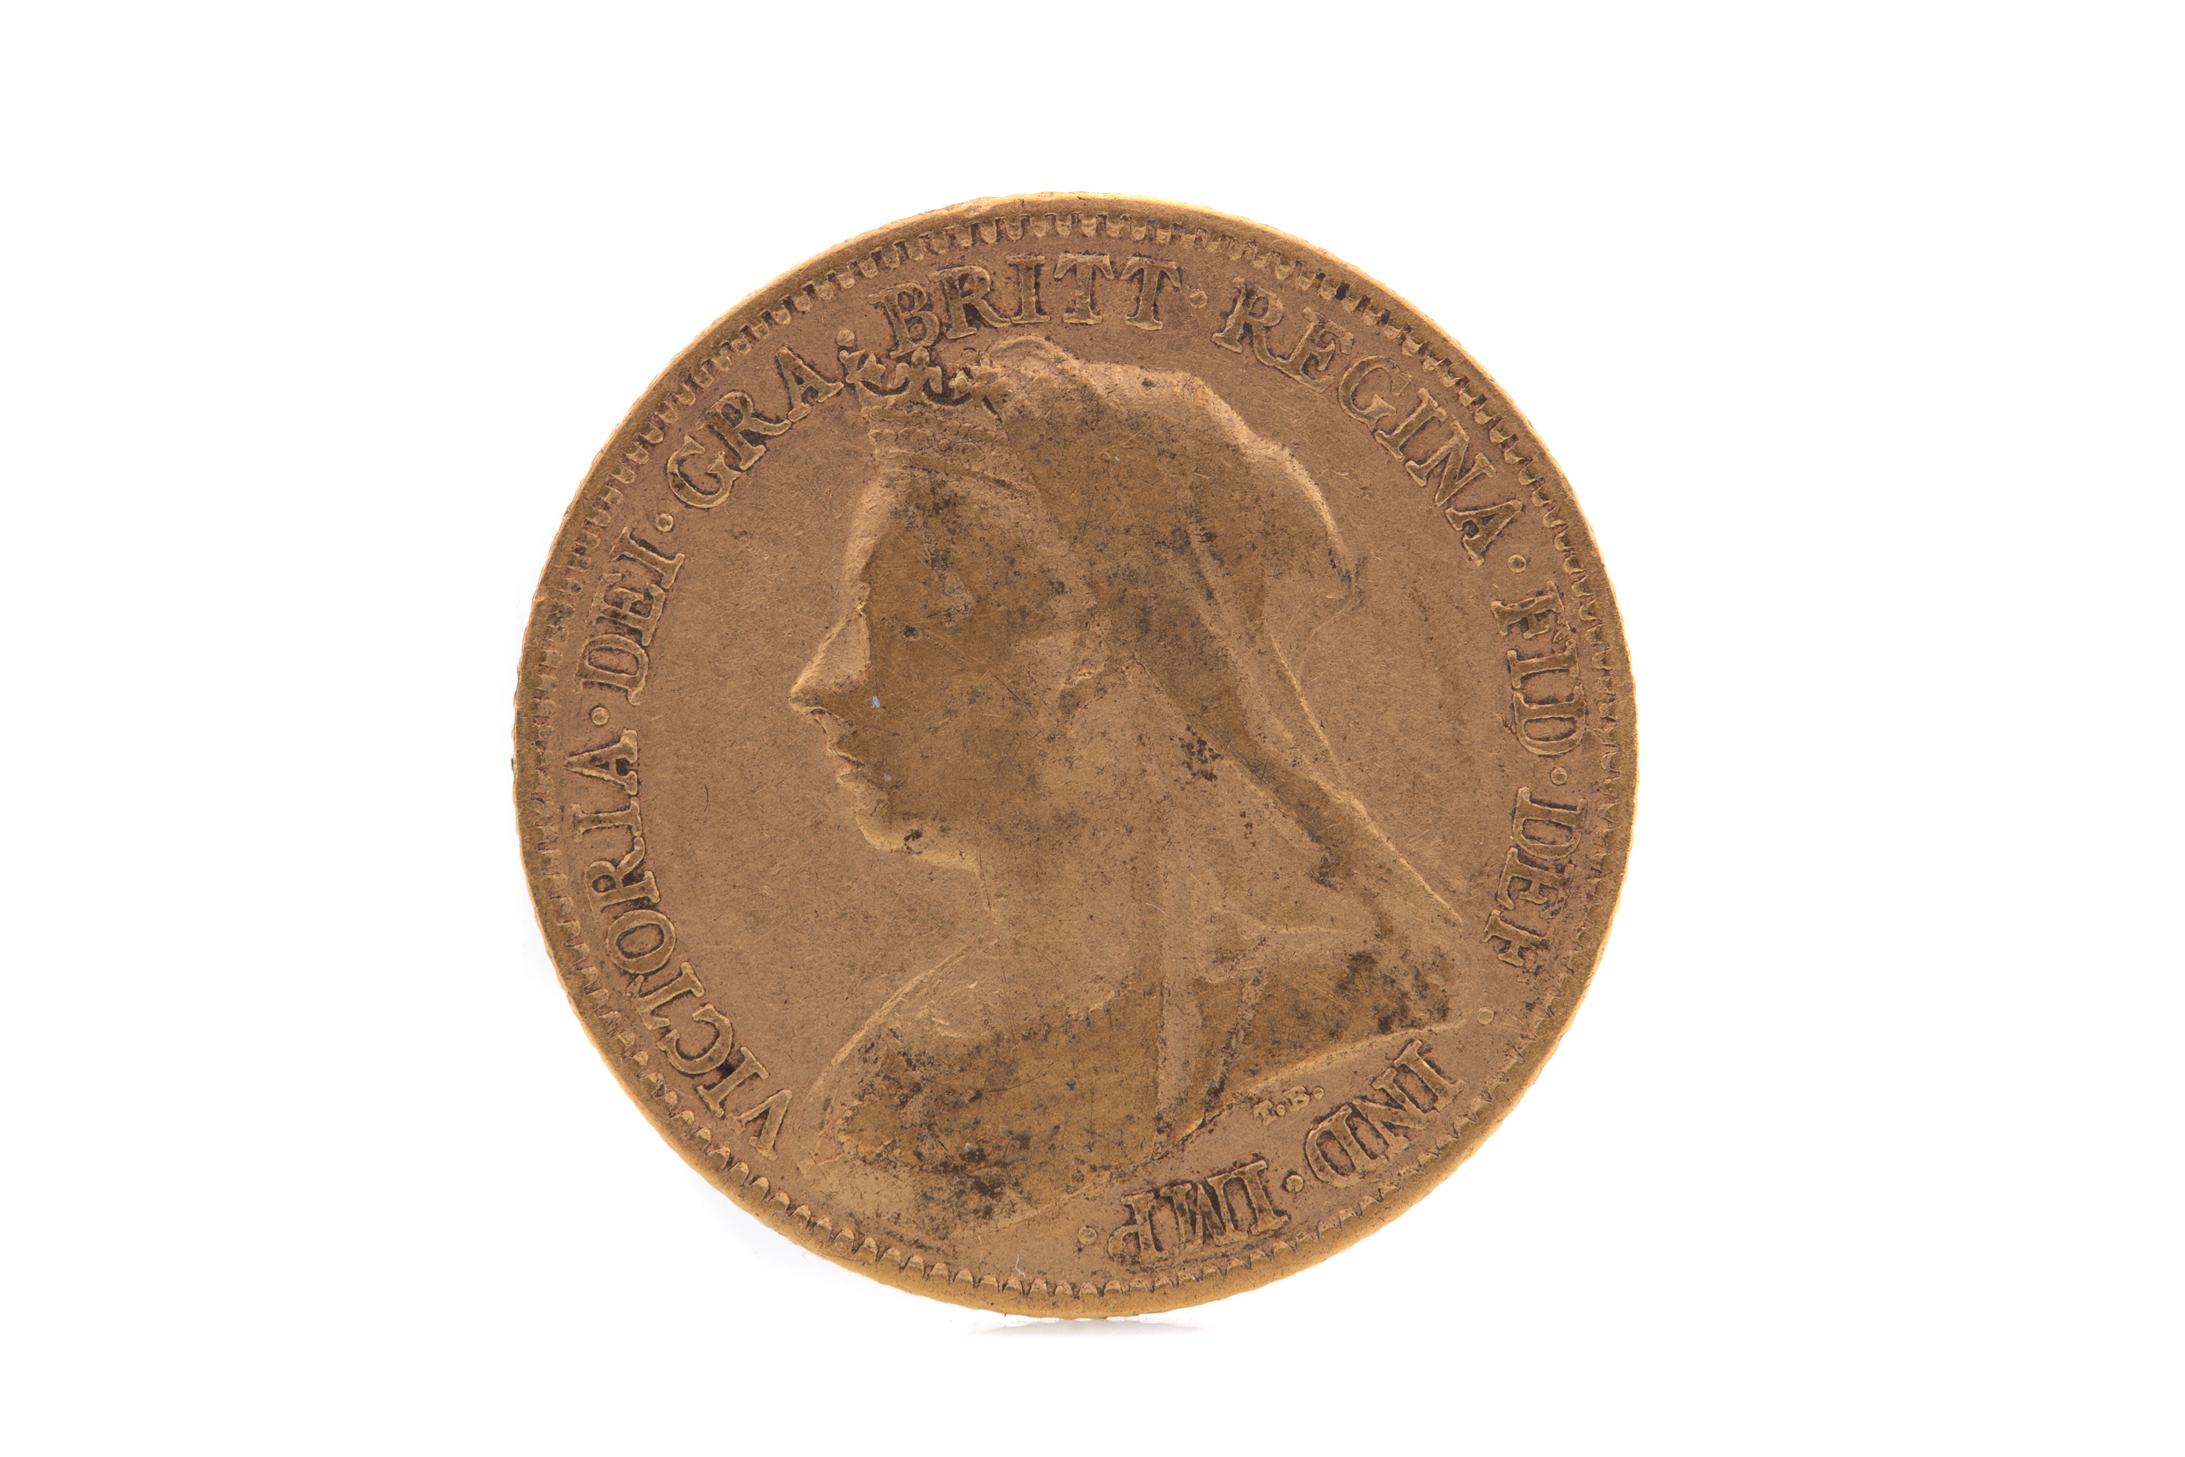 A VICTORIA GOLD HALF SOVEREIGN DATED 1894 - Image 2 of 2